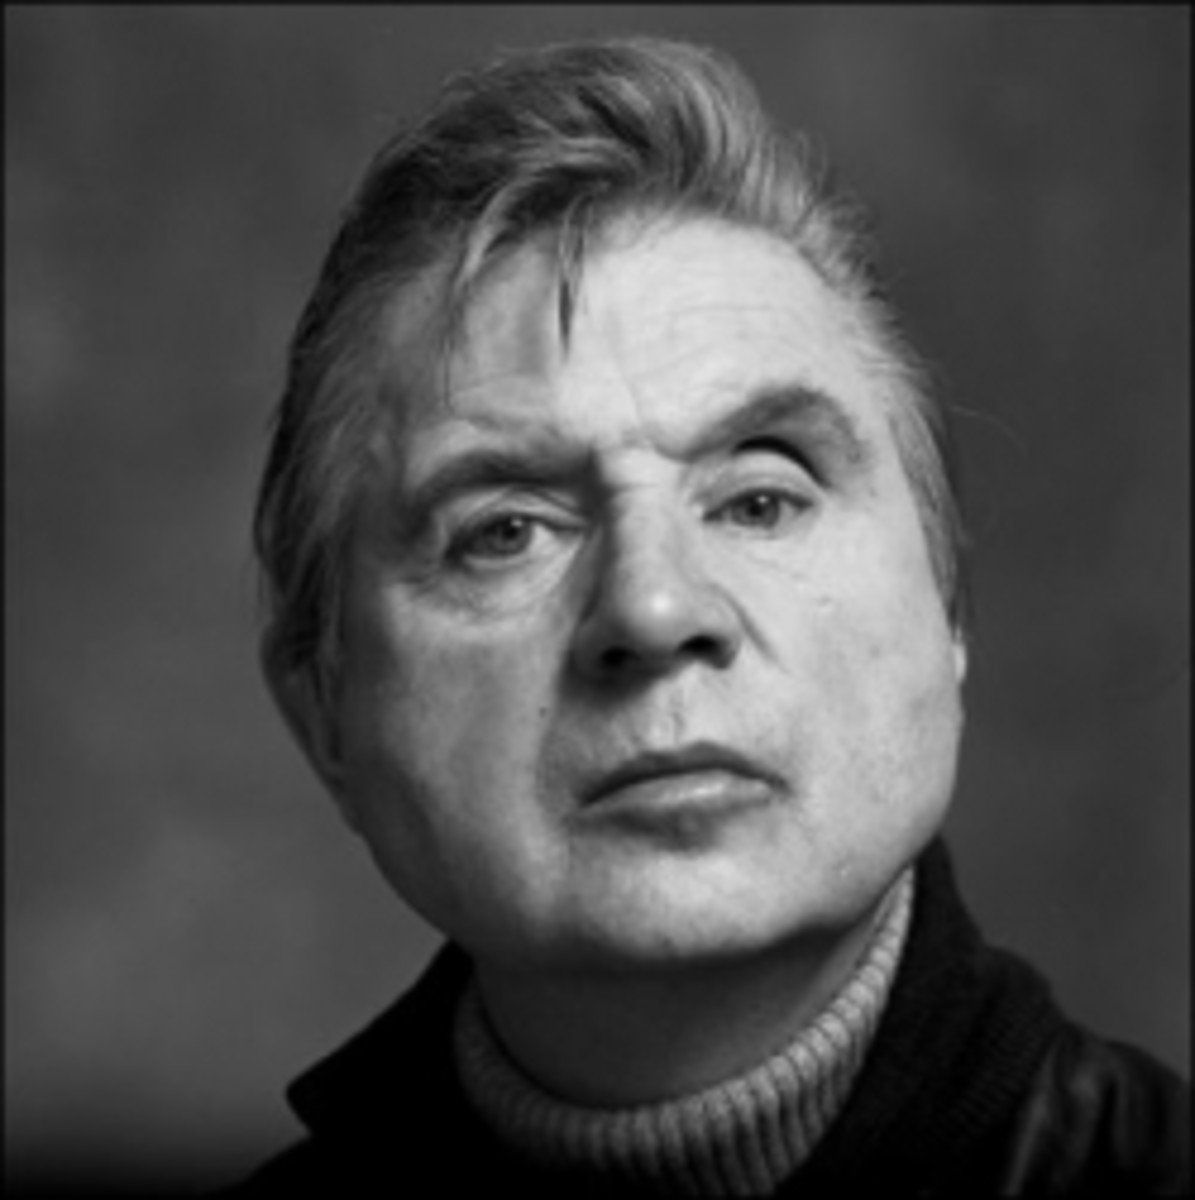 Francis Bacon|Facts About the Artist Francis Bacon